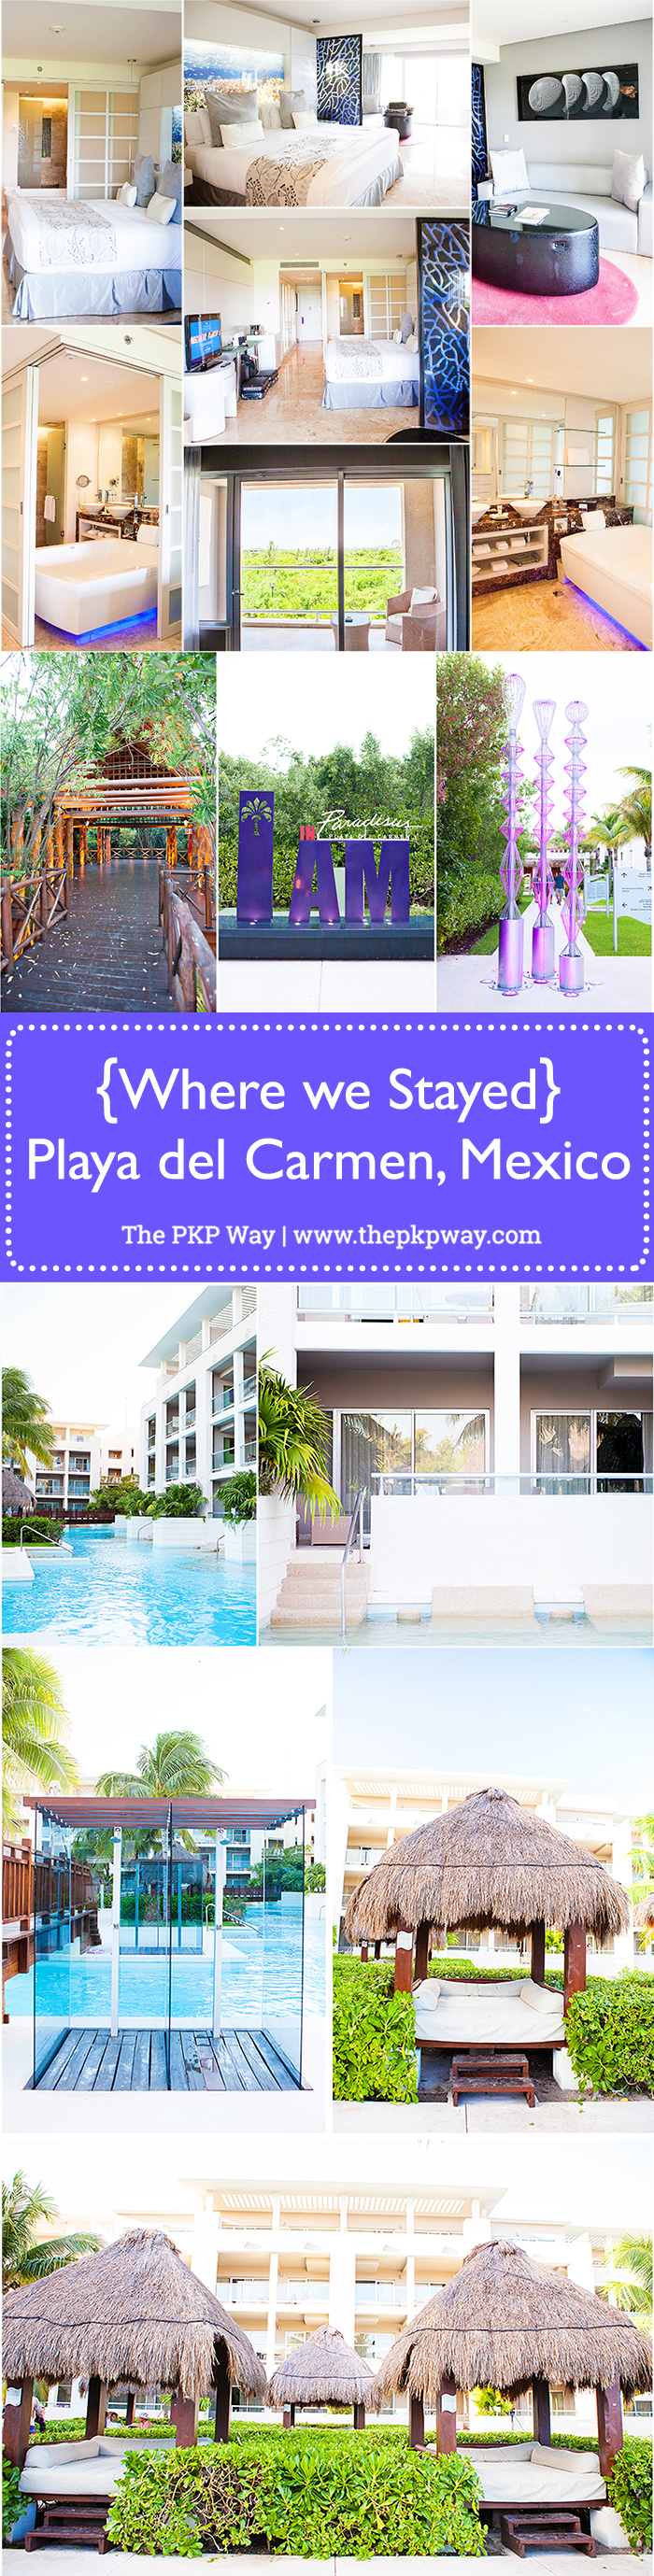 Where we Stayed in Playa del Carmen, Mexico | The PKP Way